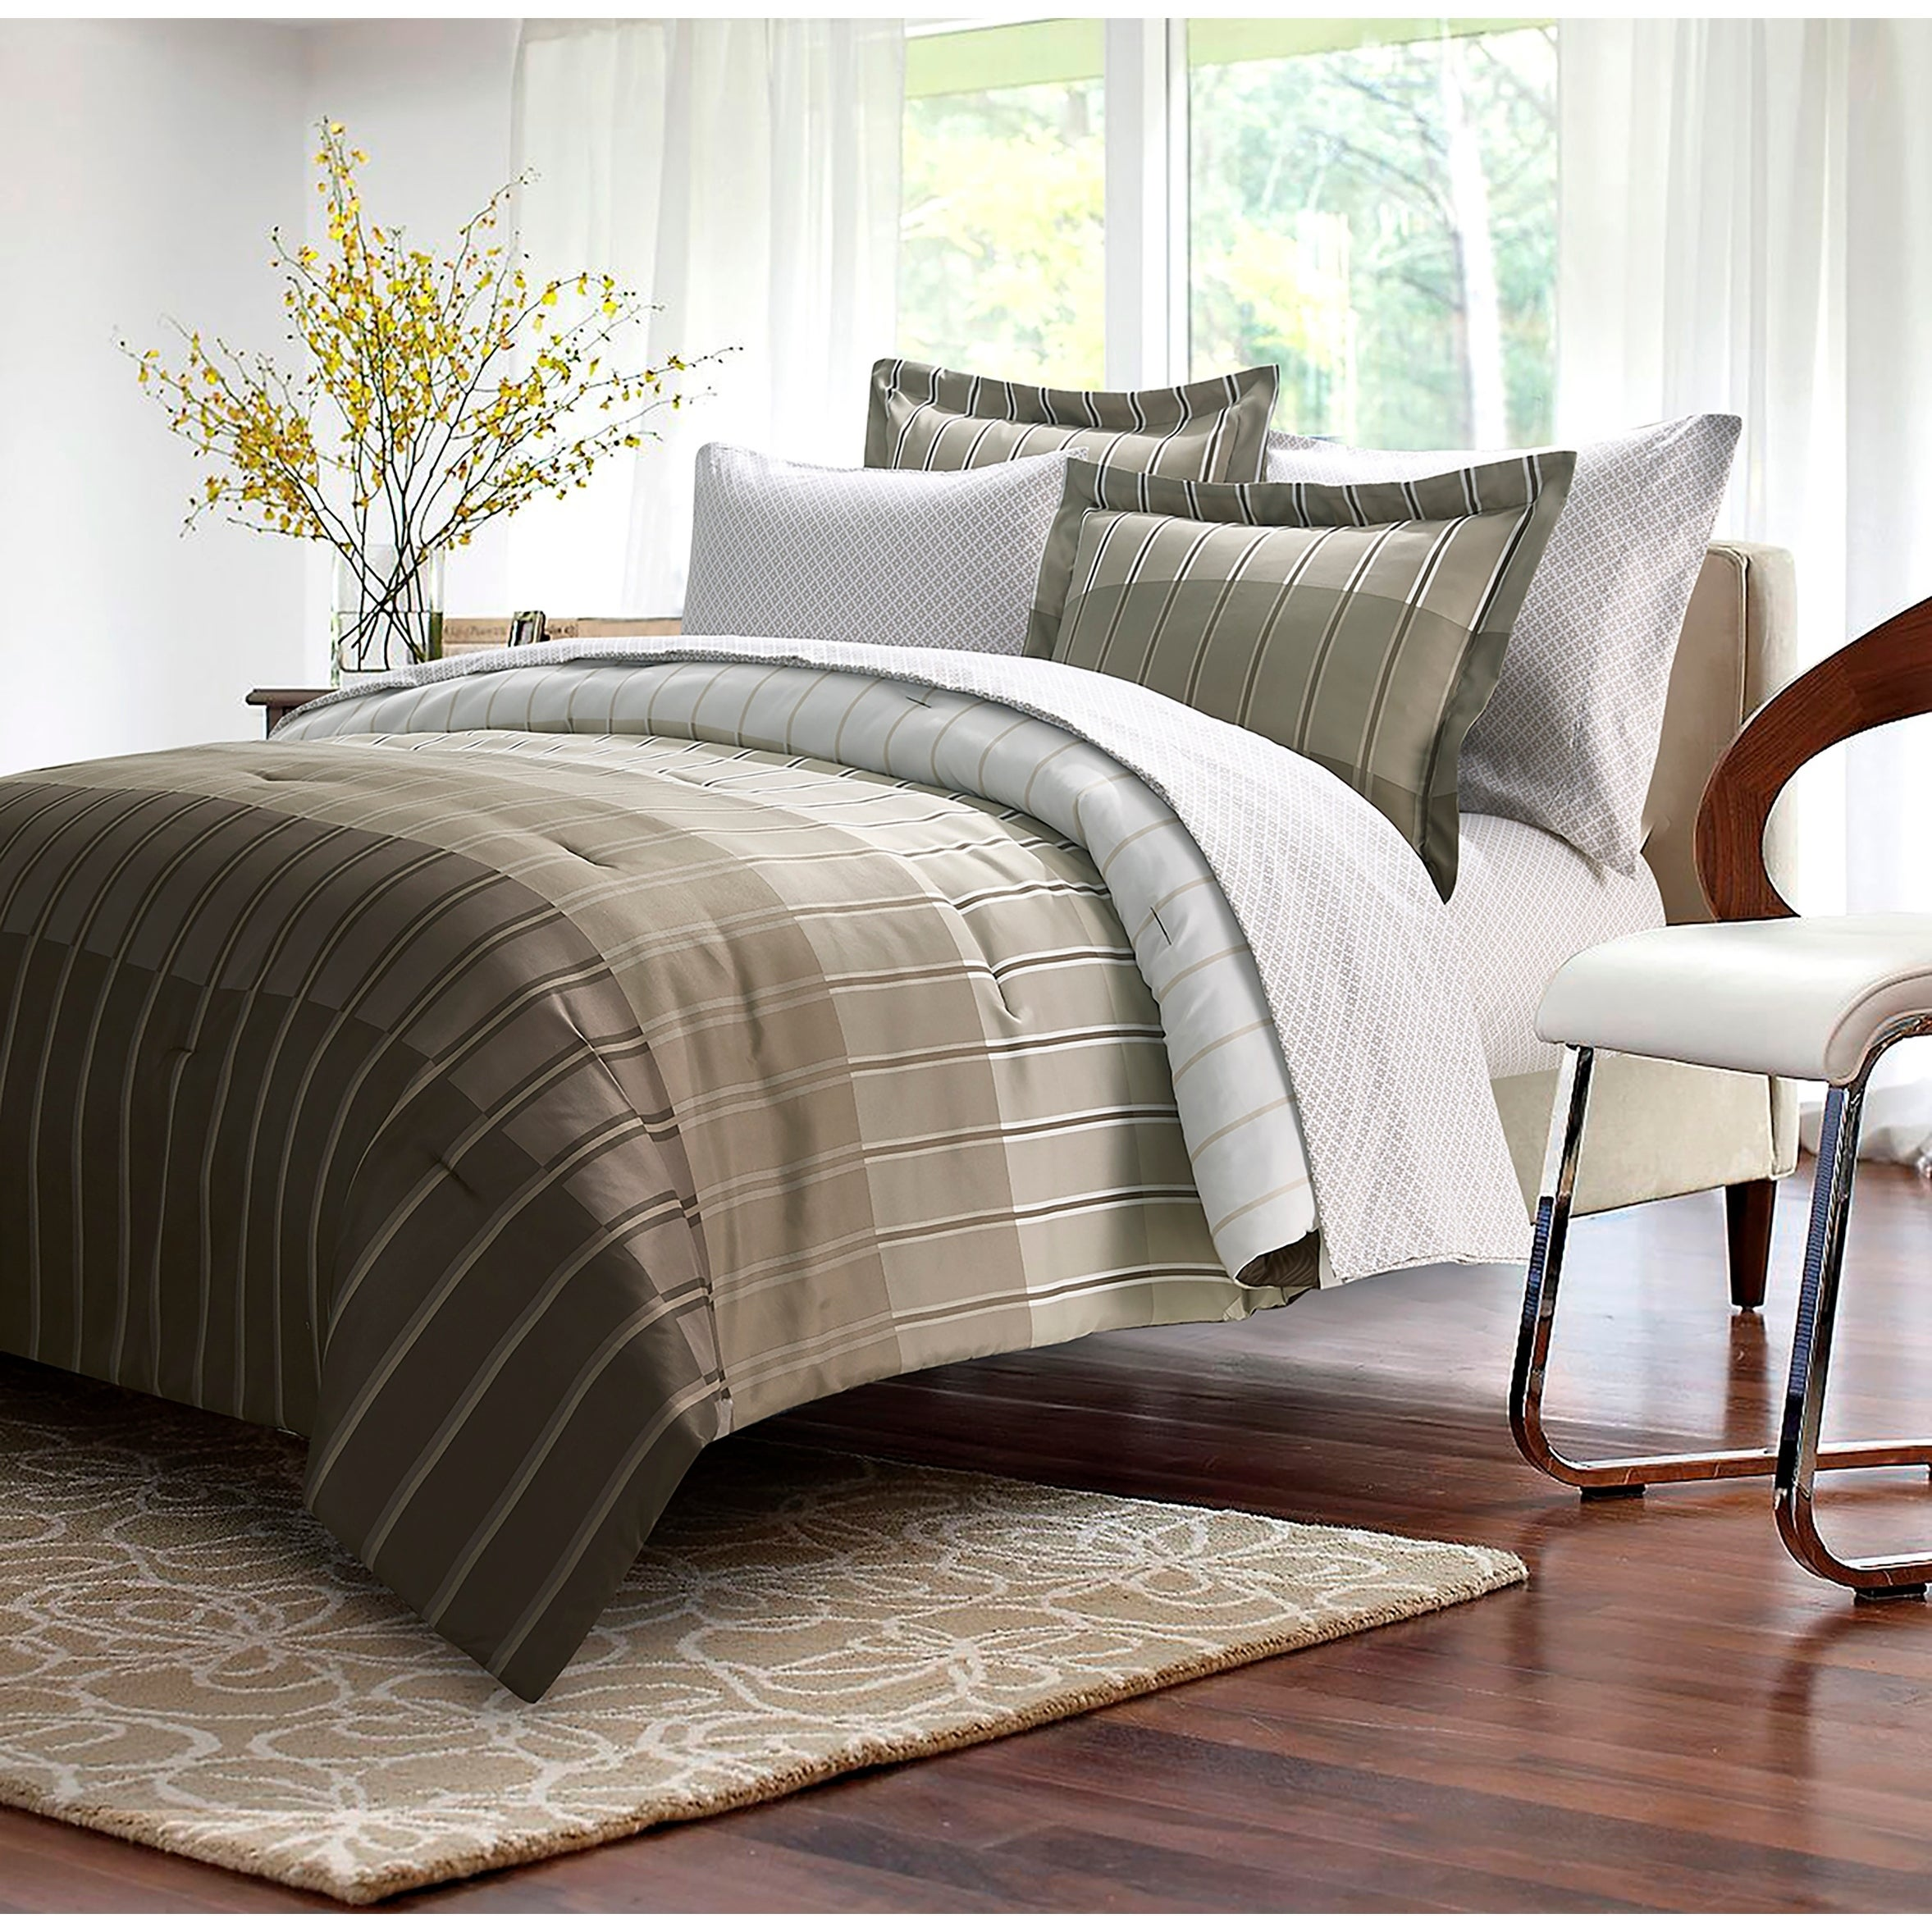 Brown Grey Ombre Stripe Taupe 8 Piece Bed In Bag Overstock 18228284